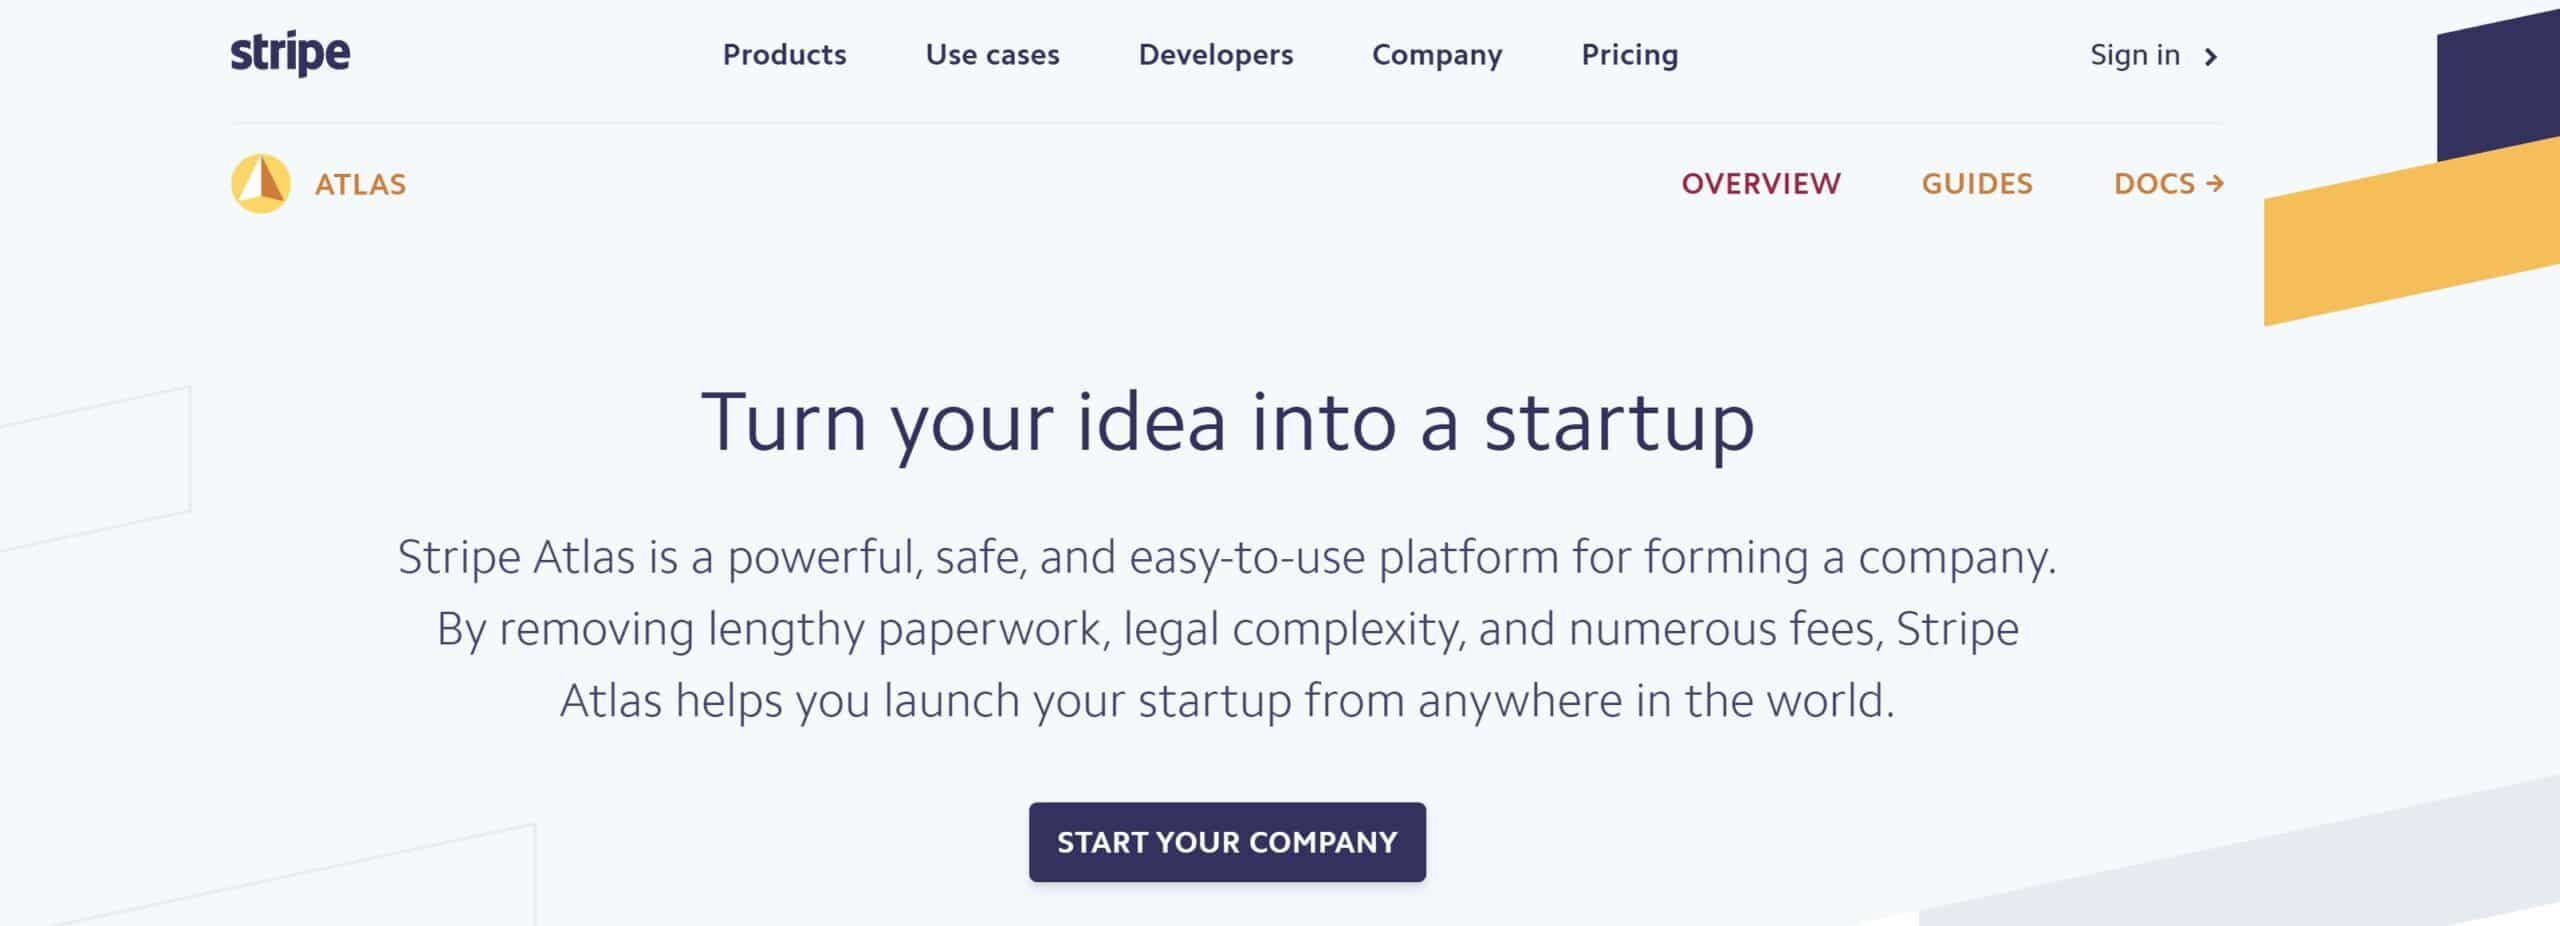 Stripe Launch incorporation service for founders and startups